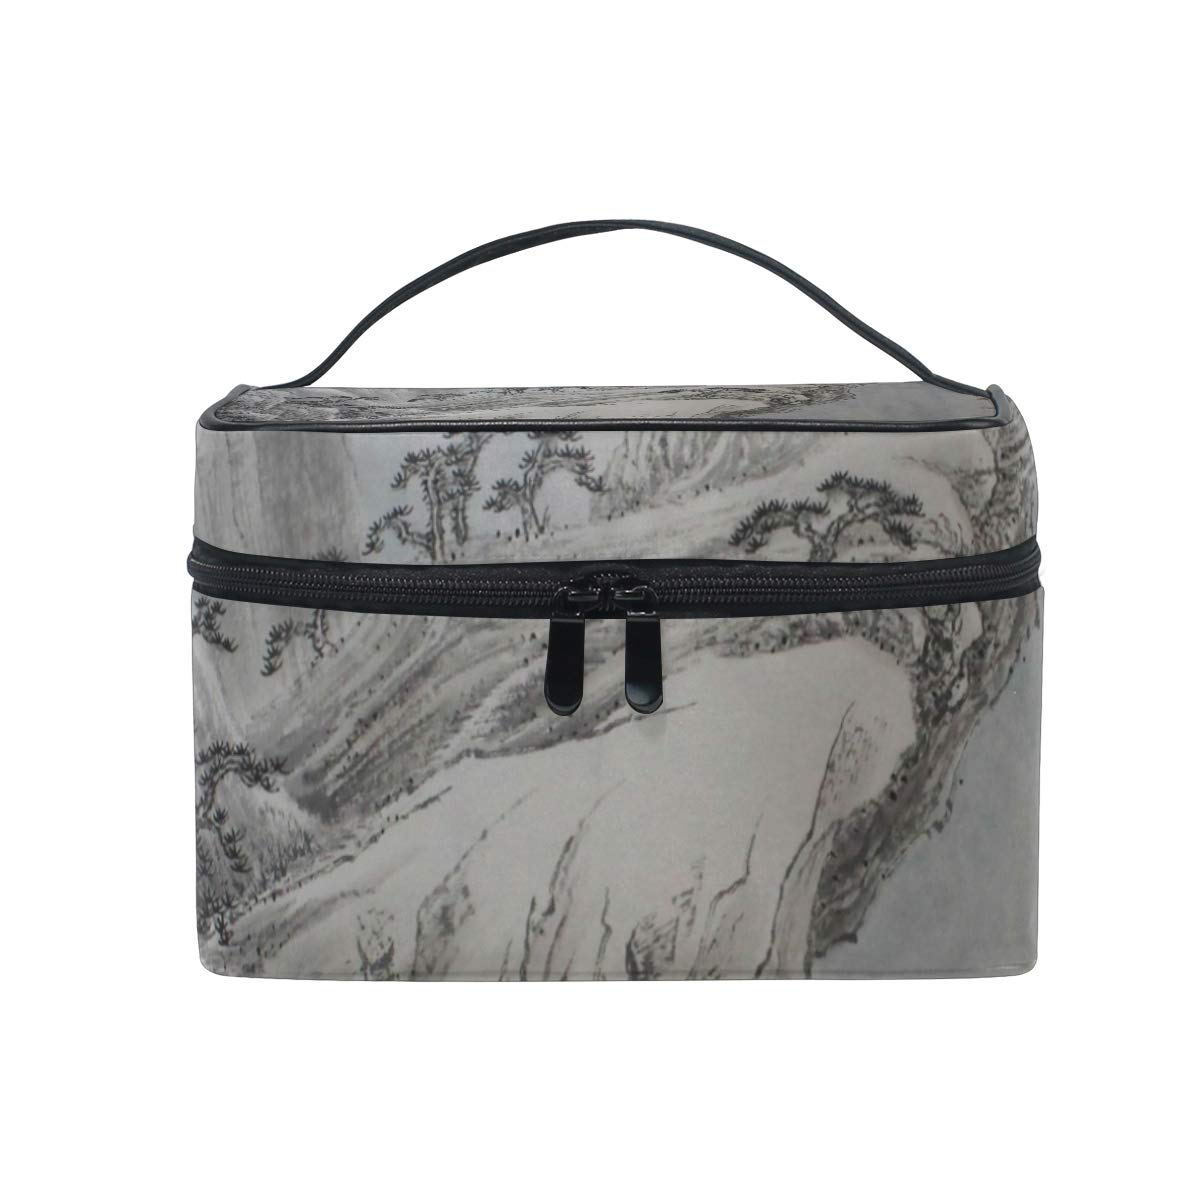 Cliff Scenery Makeup Bag Travel Toiletry BOX Portable Organizer Storage Cosmetic Train Case for Women Girls